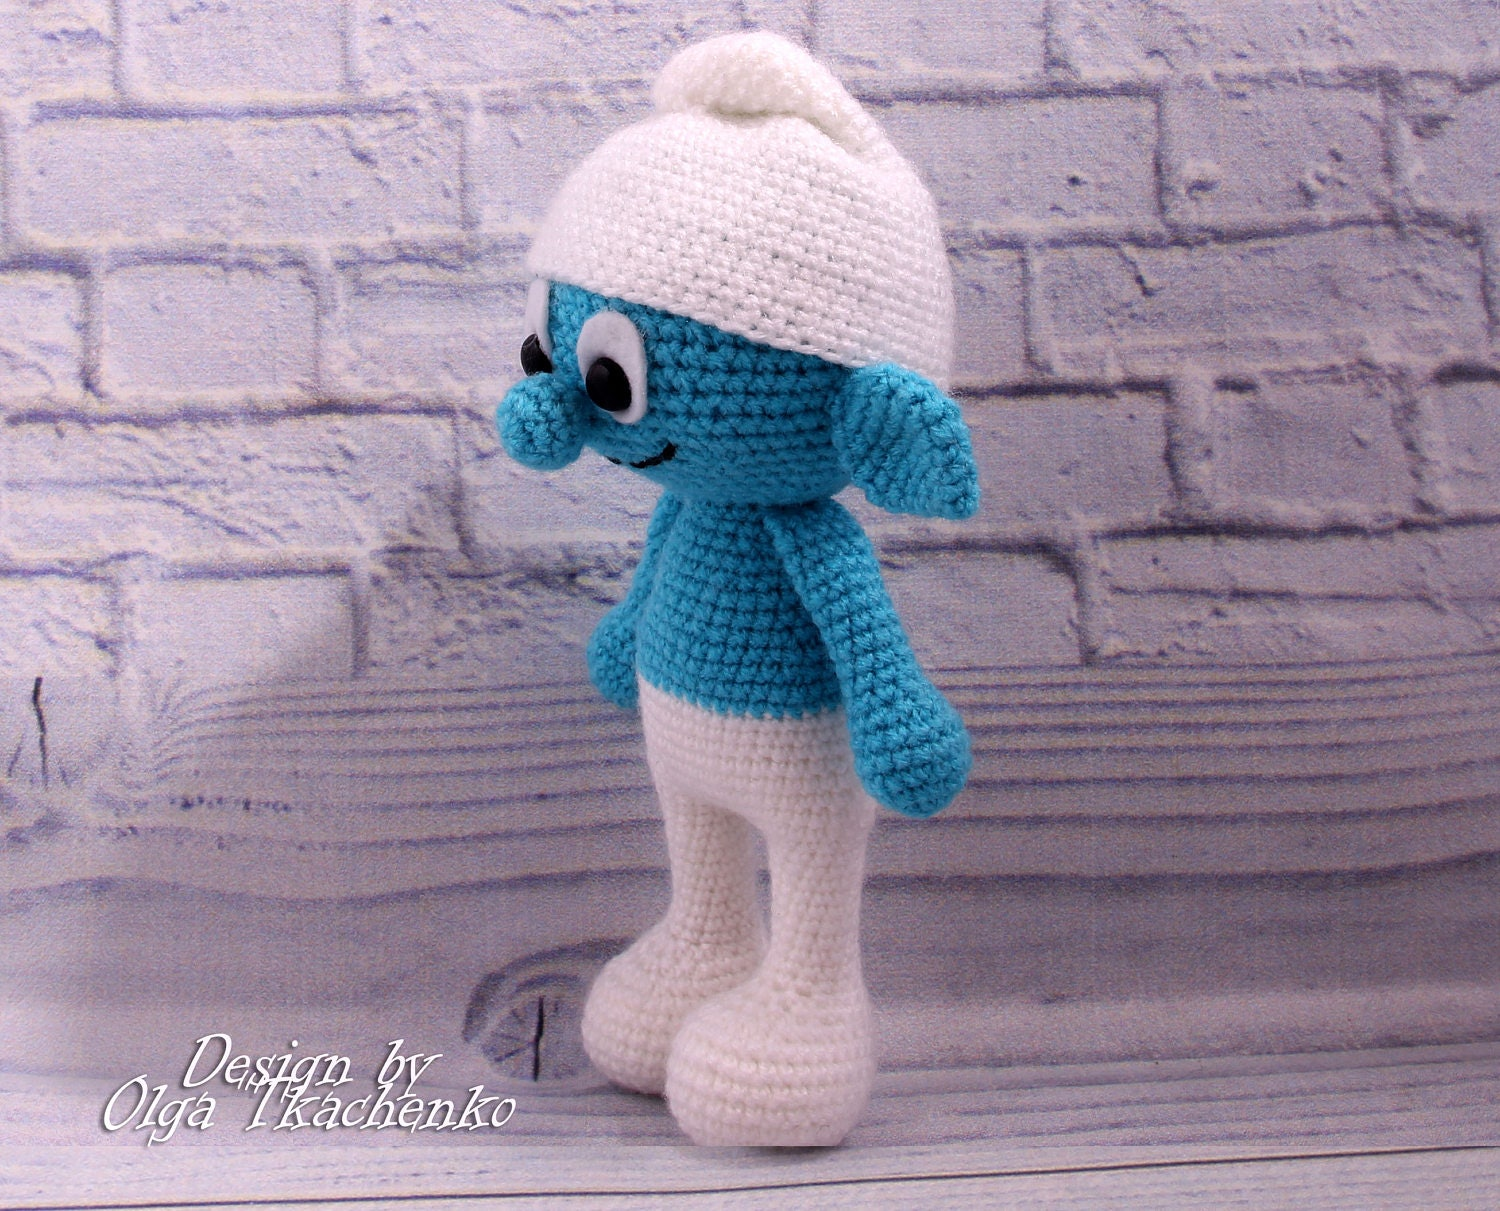 Pdf pattern toy smurf crochet pdf amigurumi pattern pdf doll toy this is a digital file bankloansurffo Image collections